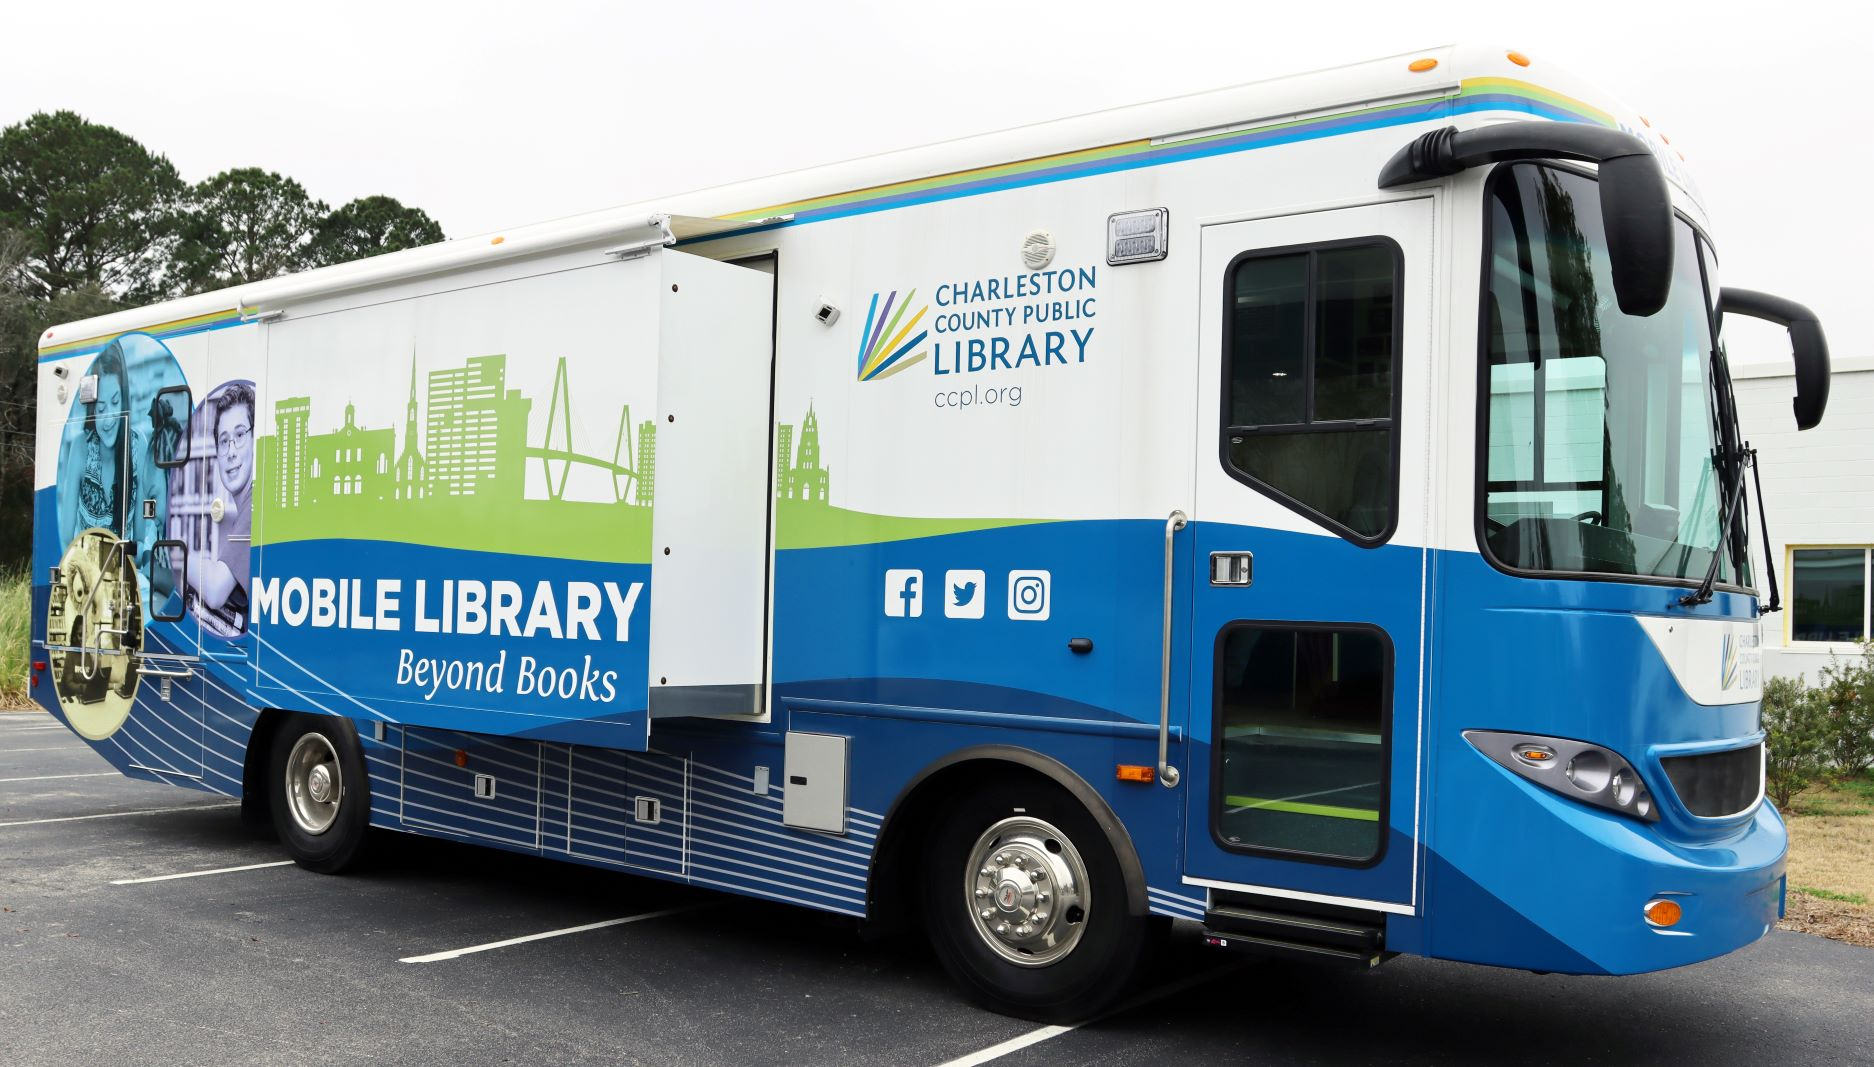 CCPL celebrates National Library Week and Library Outreach Day with pop-up events, outreach programs, social media giveaways, and more